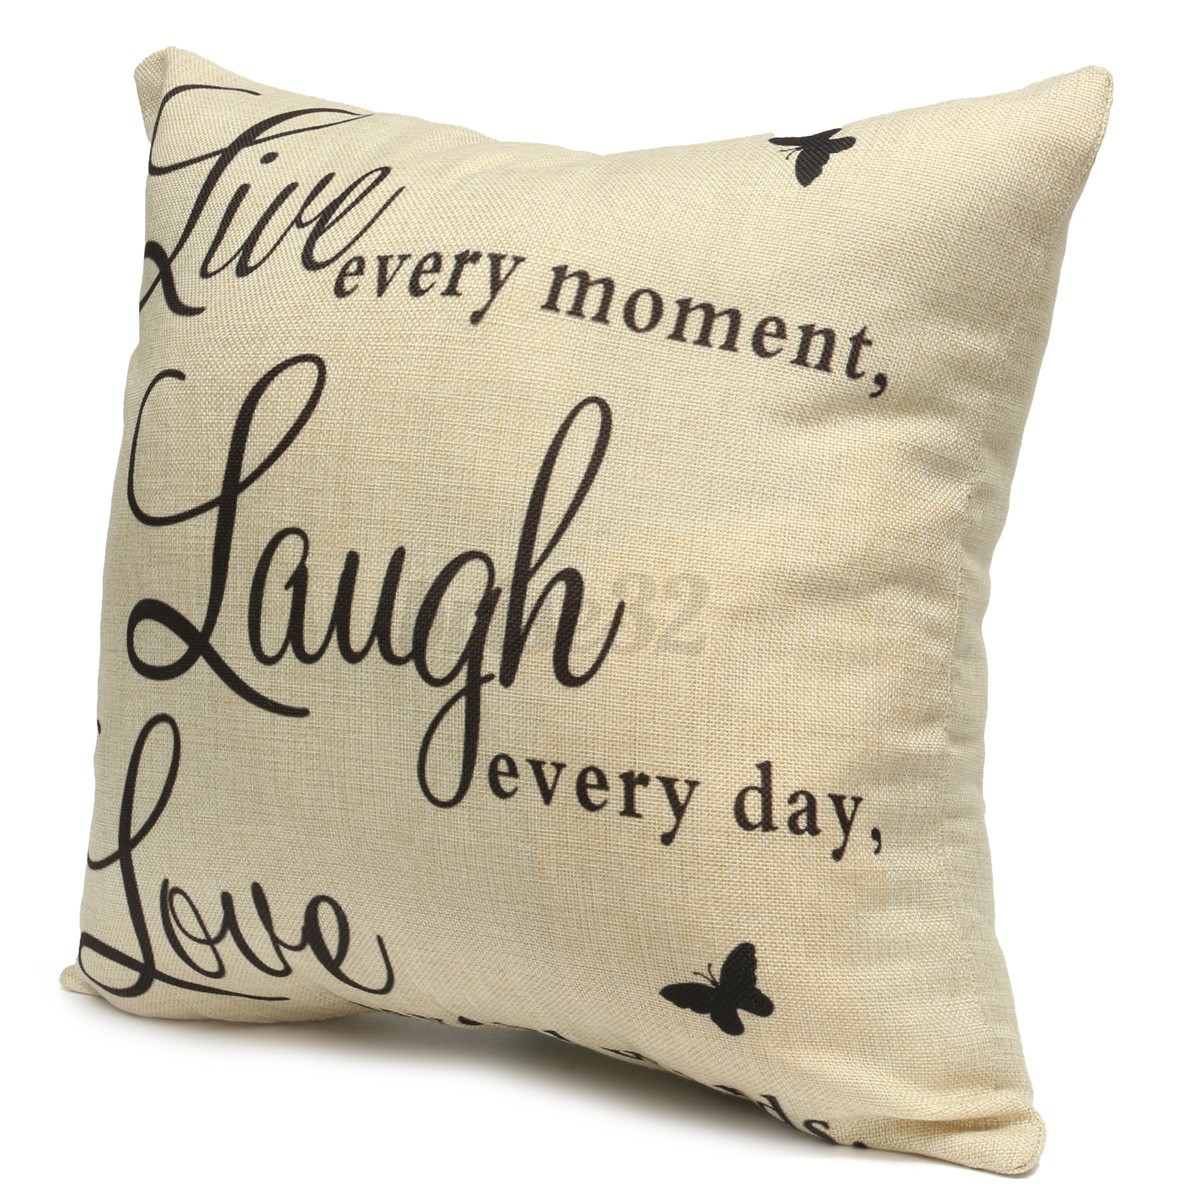 Throw Pillow Covers With Sayings : Live Laugh Love Quotes Cushion Cover Home Decor Cotton Linen Throw Pillow Case eBay